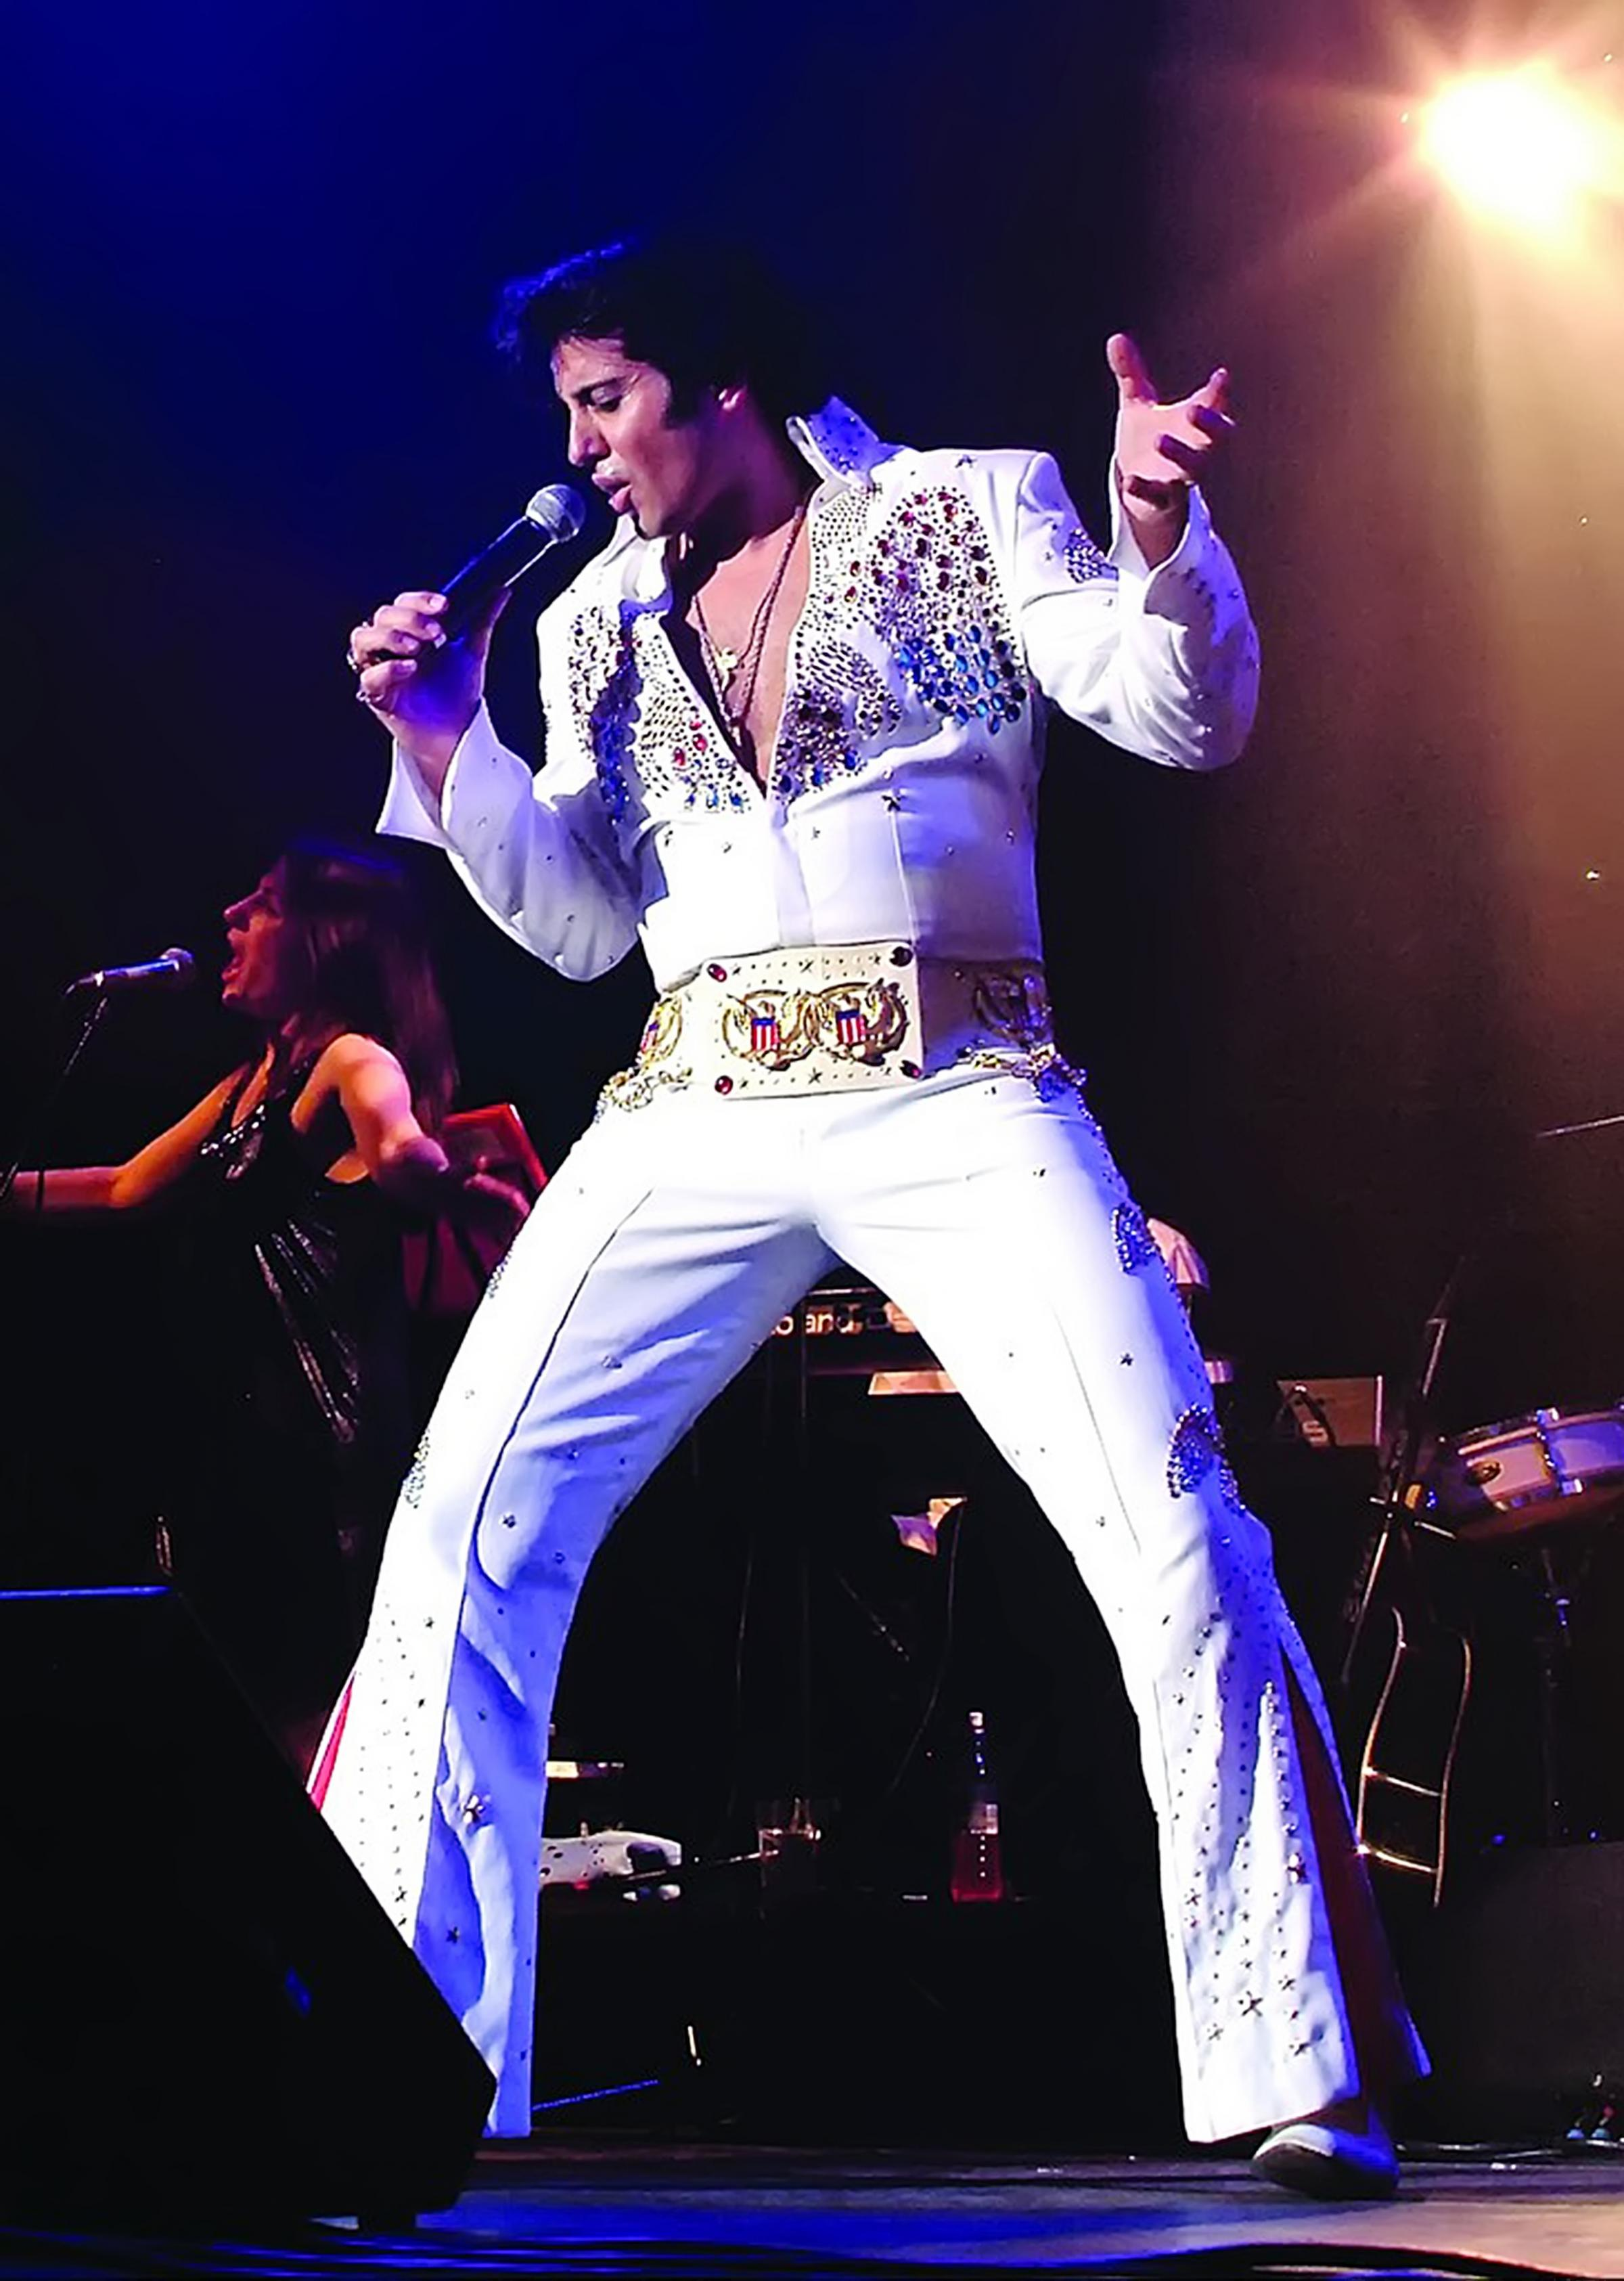 Mario Kombou plays Presley in tribute show The Elvis Years at the King's Hall in Ilkley.